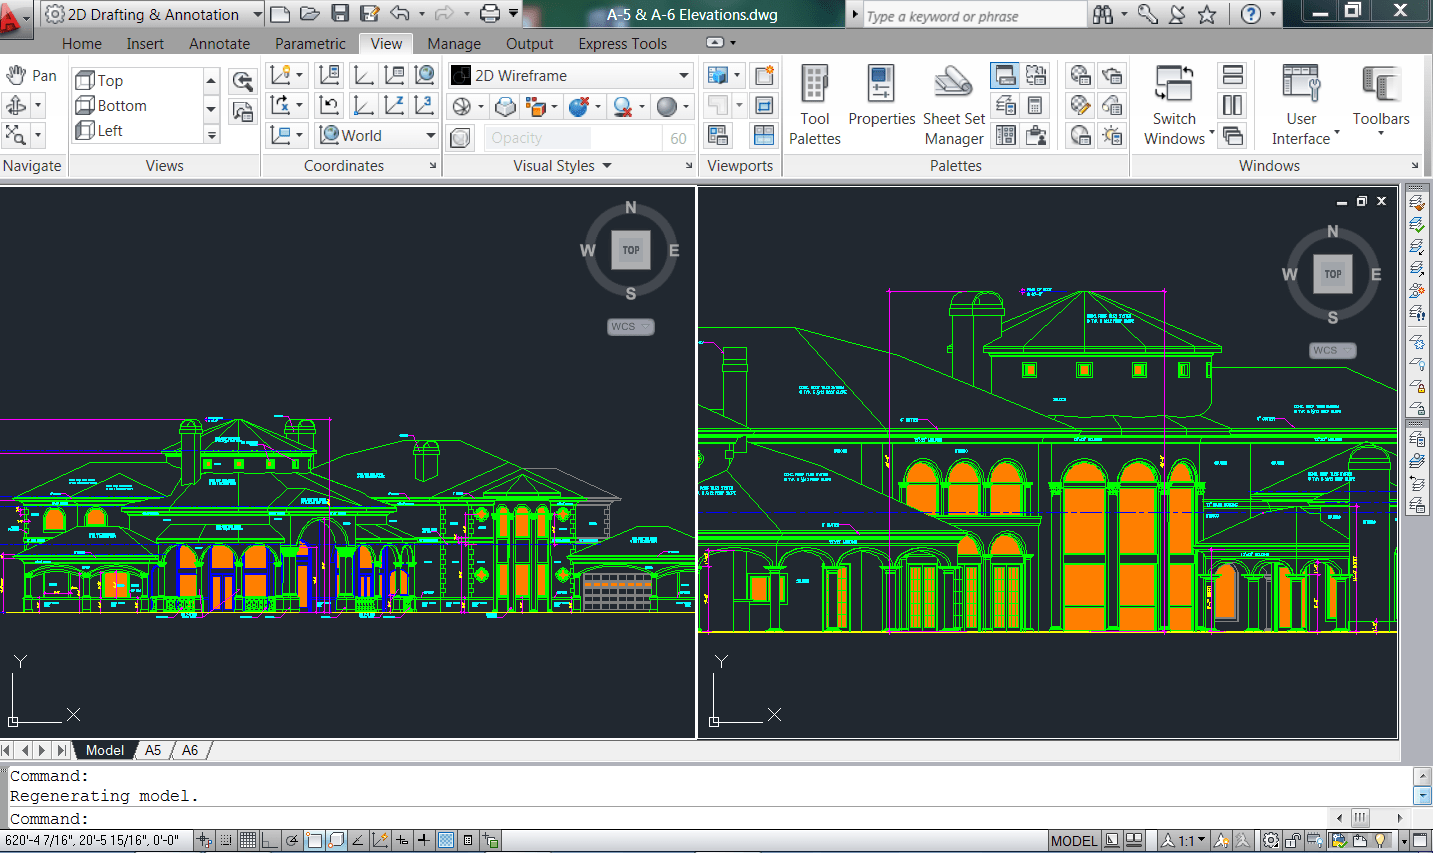 2??cad??? Using The Split Screen In Autocad